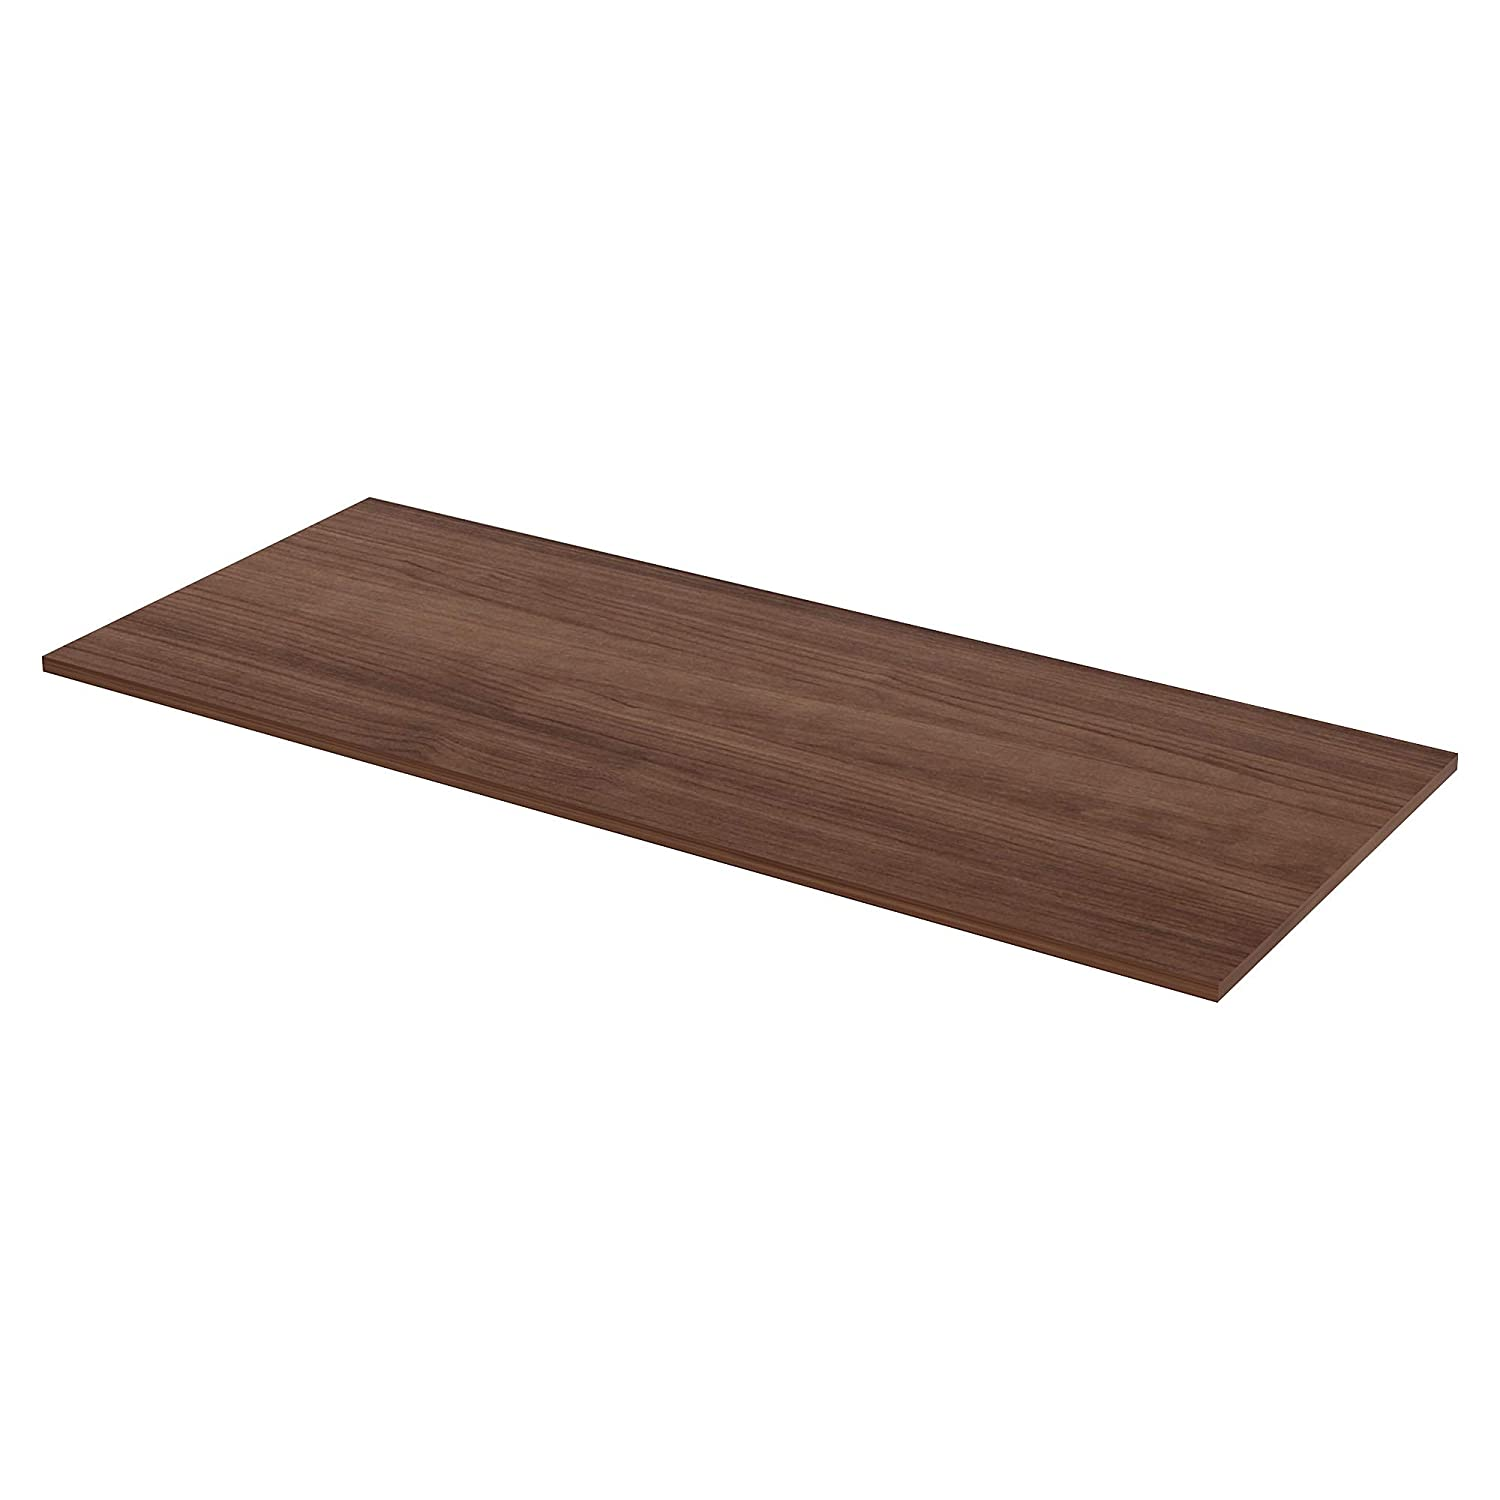 Lorell 34407 Active Office Relevance Table Top, Walnut,Laminated